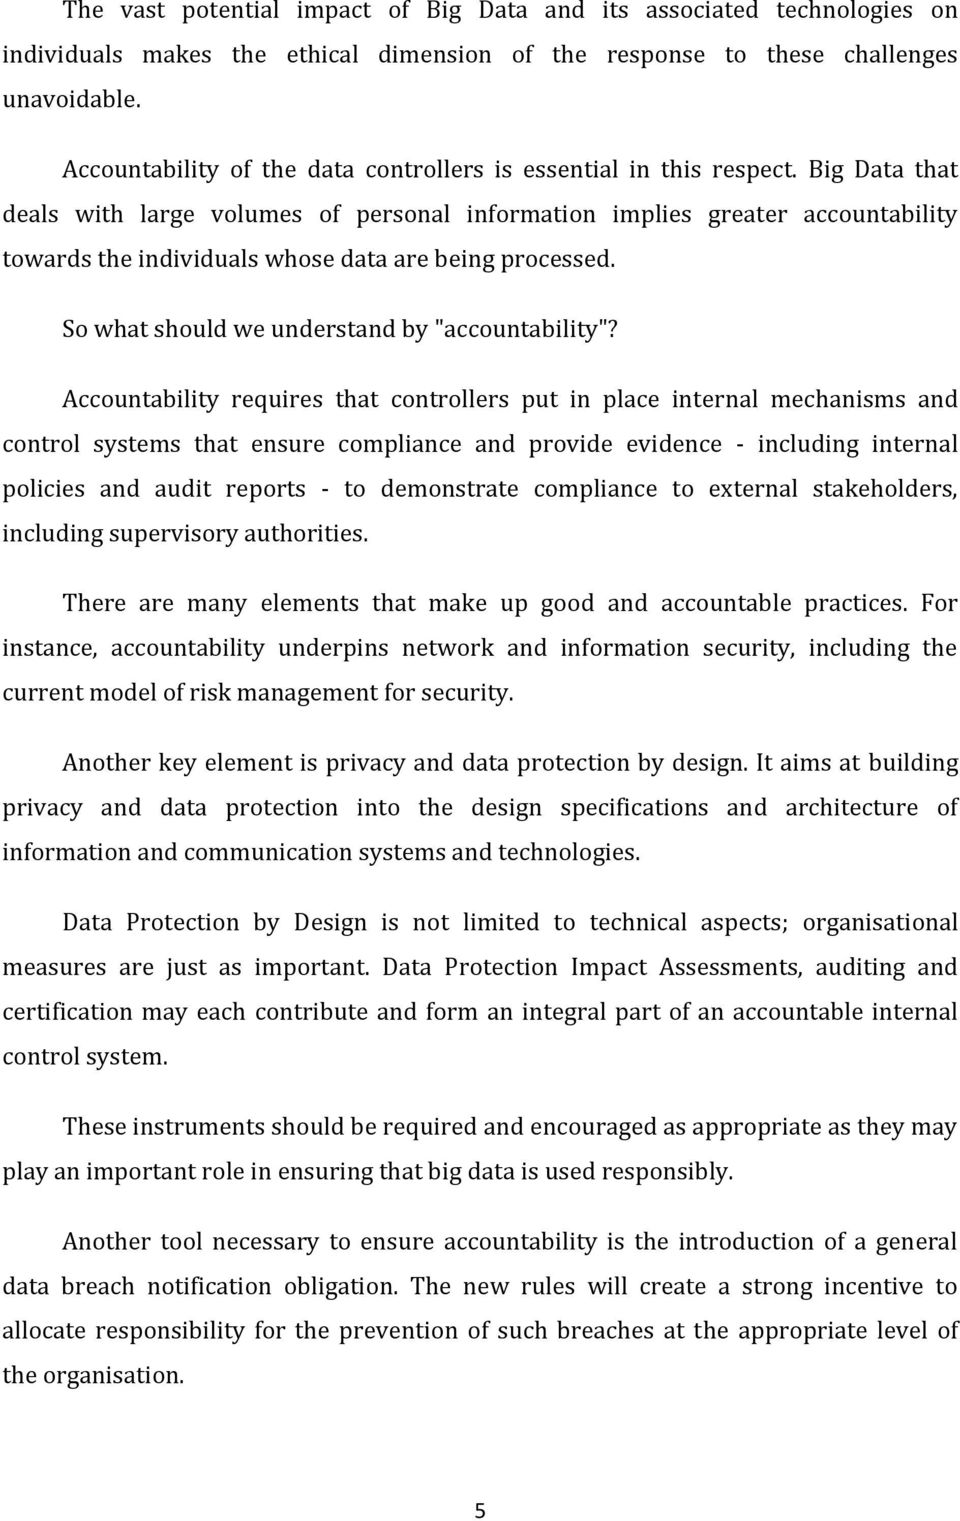 "Big Data that deals with large volumes of personal information implies greater accountability towards the individuals whose data are being processed. So what should we understand by ""accountability""?"